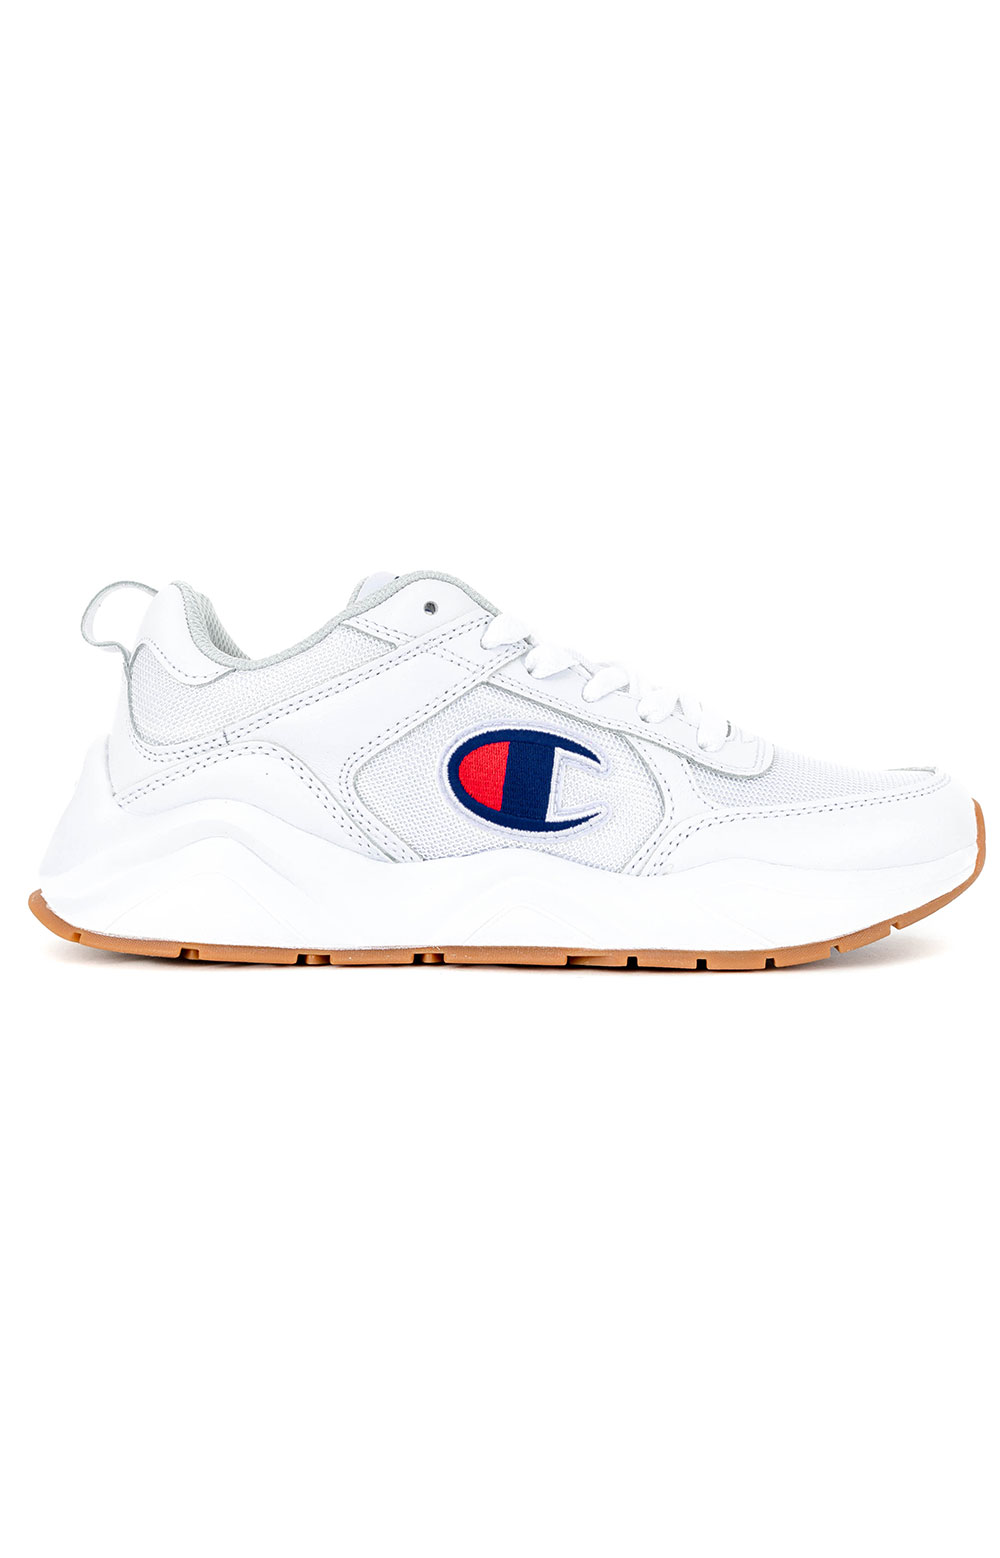 93 Eighteen Shoes - Classic White